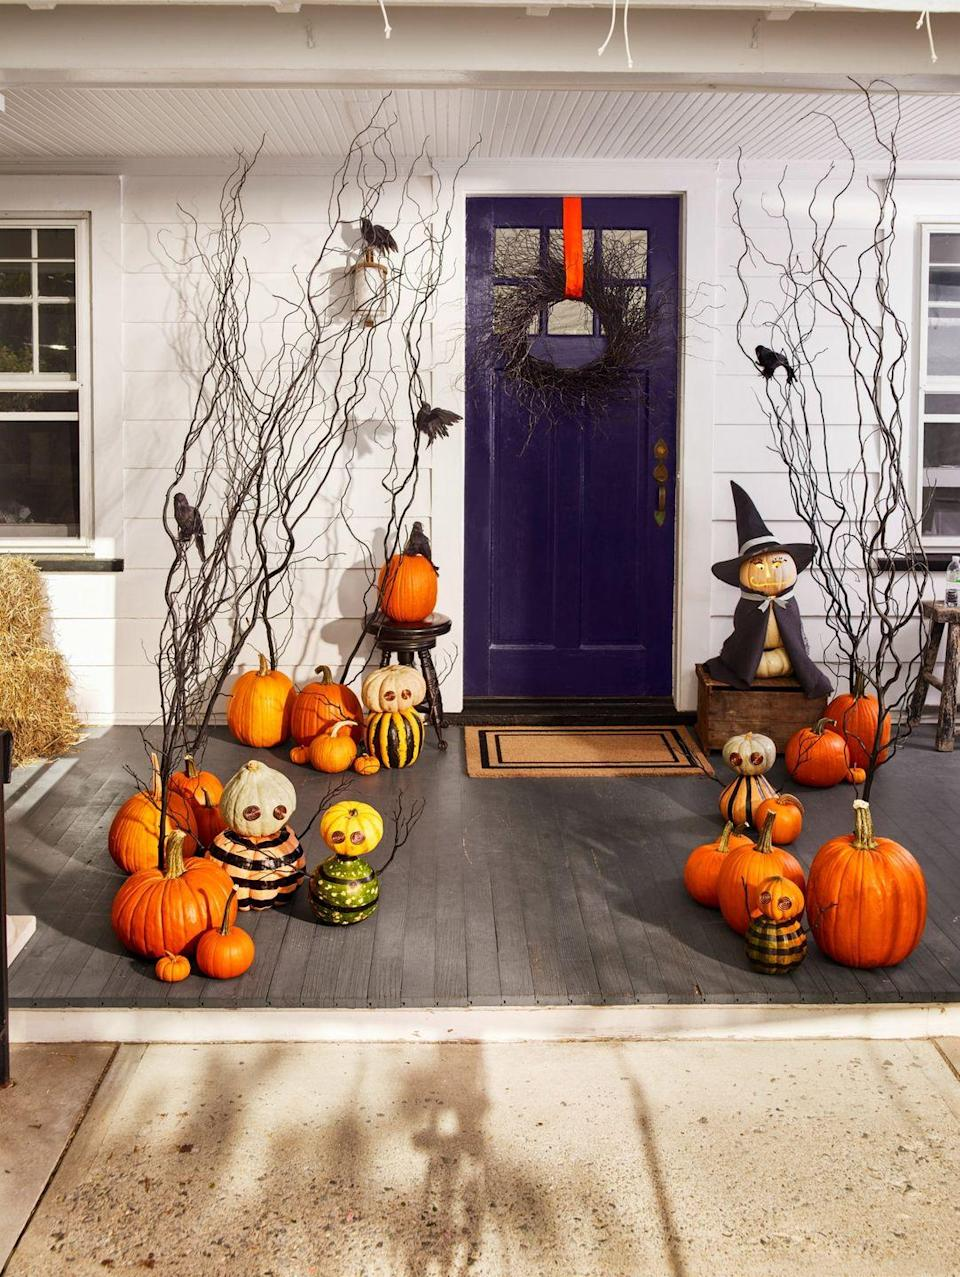 """<p>Coiled aluminum-wire eyes that reflect light are a reminder that this ragtag team of ghouls is keeping watch over your house. Paint the body in your favorite patterns, stack a smaller pumpkin on top for the head, and add sticks for arms. </p><p><strong>What You'll Need:</strong> <a href=""""https://www.amazon.com/BENECREAT-Aluminum-Anodized-Jewelry-Beading/dp/B0752D6NKD/ref=redir_mobile_desktop?ie=UTF8&aaxitk=Oip9pha8iZHEN-j0yDUUcQ&hsa_cr_id=3934383830101&ref_=sbx_be_s_sparkle_mcd_asin_1&tag=syn-yahoo-20&ascsubtag=%5Bartid%7C10070.g.1279%5Bsrc%7Cyahoo-us"""" rel=""""nofollow noopener"""" target=""""_blank"""" data-ylk=""""slk:Aluminum wire"""" class=""""link rapid-noclick-resp"""">Aluminum wire</a> ($14, Amazon); <a href=""""https://www.amazon.com/Zenacolor-Acrylic-Painting-Supplies-Children/dp/B07PPTRFPL/ref=sr_1_1_sspa?dchild=1&keywords=acrylic+paint&qid=1594916836&sr=8-1-spons&psc=1&spLa=ZW5jcnlwdGVkUXVhbGlmaWVyPUEzQUFPMVA4NkZTMENSJmVuY3J5cHRlZElkPUEwODgzMjkzMzBZTkFDRVdYQkQ5UyZlbmNyeXB0ZWRBZElkPUEwNTQ1Nzg1M0ZOUklUQVdQUTZWSyZ3aWRnZXROYW1lPXNwX2F0ZiZhY3Rpb249Y2xpY2tSZWRpcmVjdCZkb05vdExvZ0NsaWNrPXRydWU%3D&tag=syn-yahoo-20&ascsubtag=%5Bartid%7C10070.g.1279%5Bsrc%7Cyahoo-us"""" rel=""""nofollow noopener"""" target=""""_blank"""" data-ylk=""""slk:acrylic paint"""" class=""""link rapid-noclick-resp"""">acrylic paint</a> ($30, Amazon)</p>"""